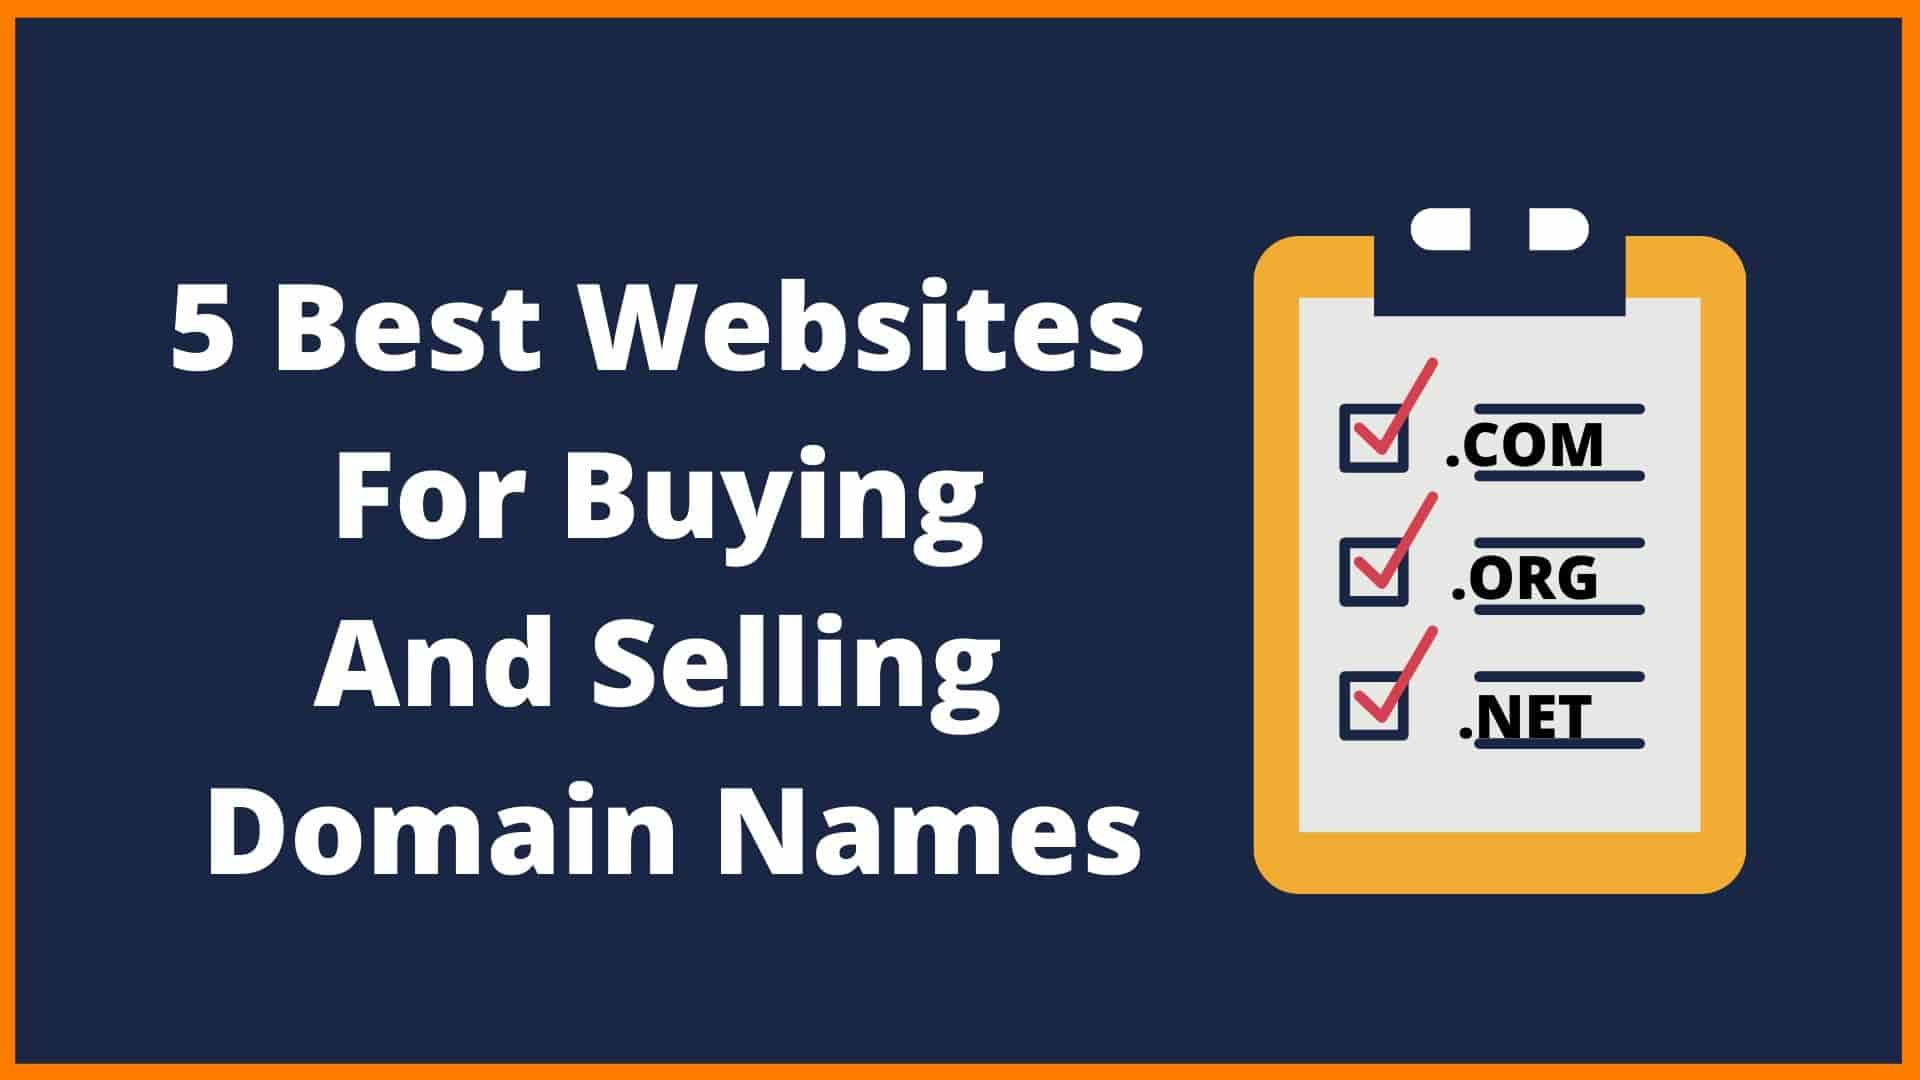 5 Best Websites For Buying And Selling Domain Names in 2020 | How to Make Money Selling Domains